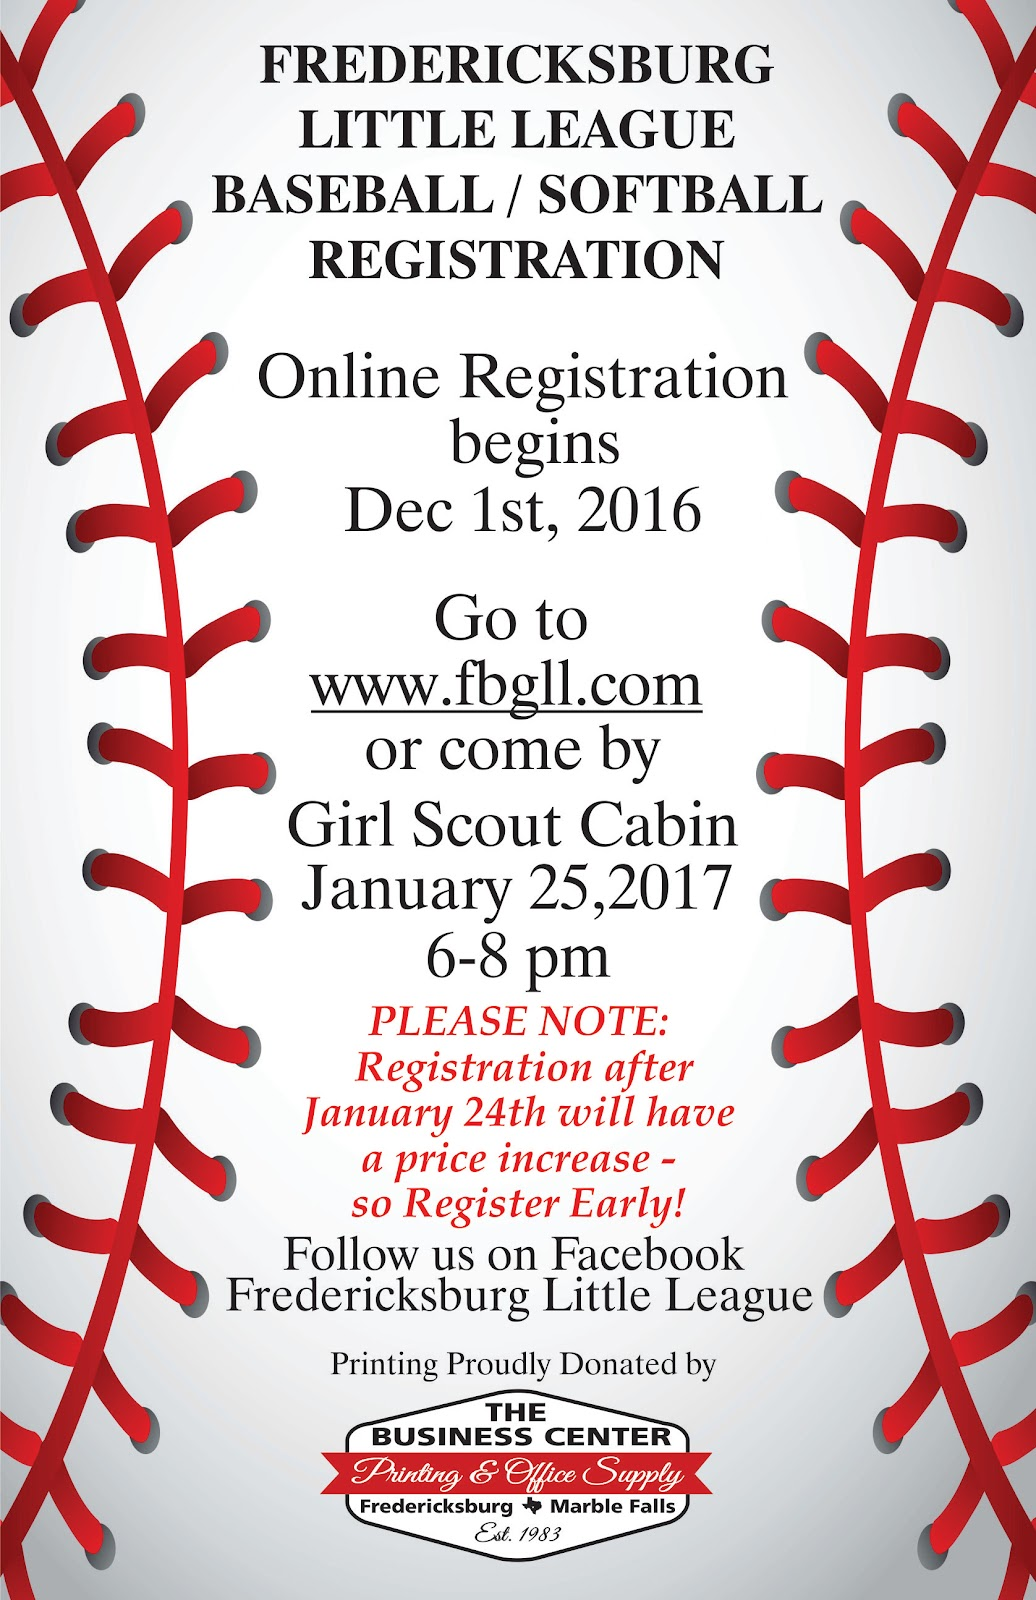 FBG Little League Registration v2.jpg